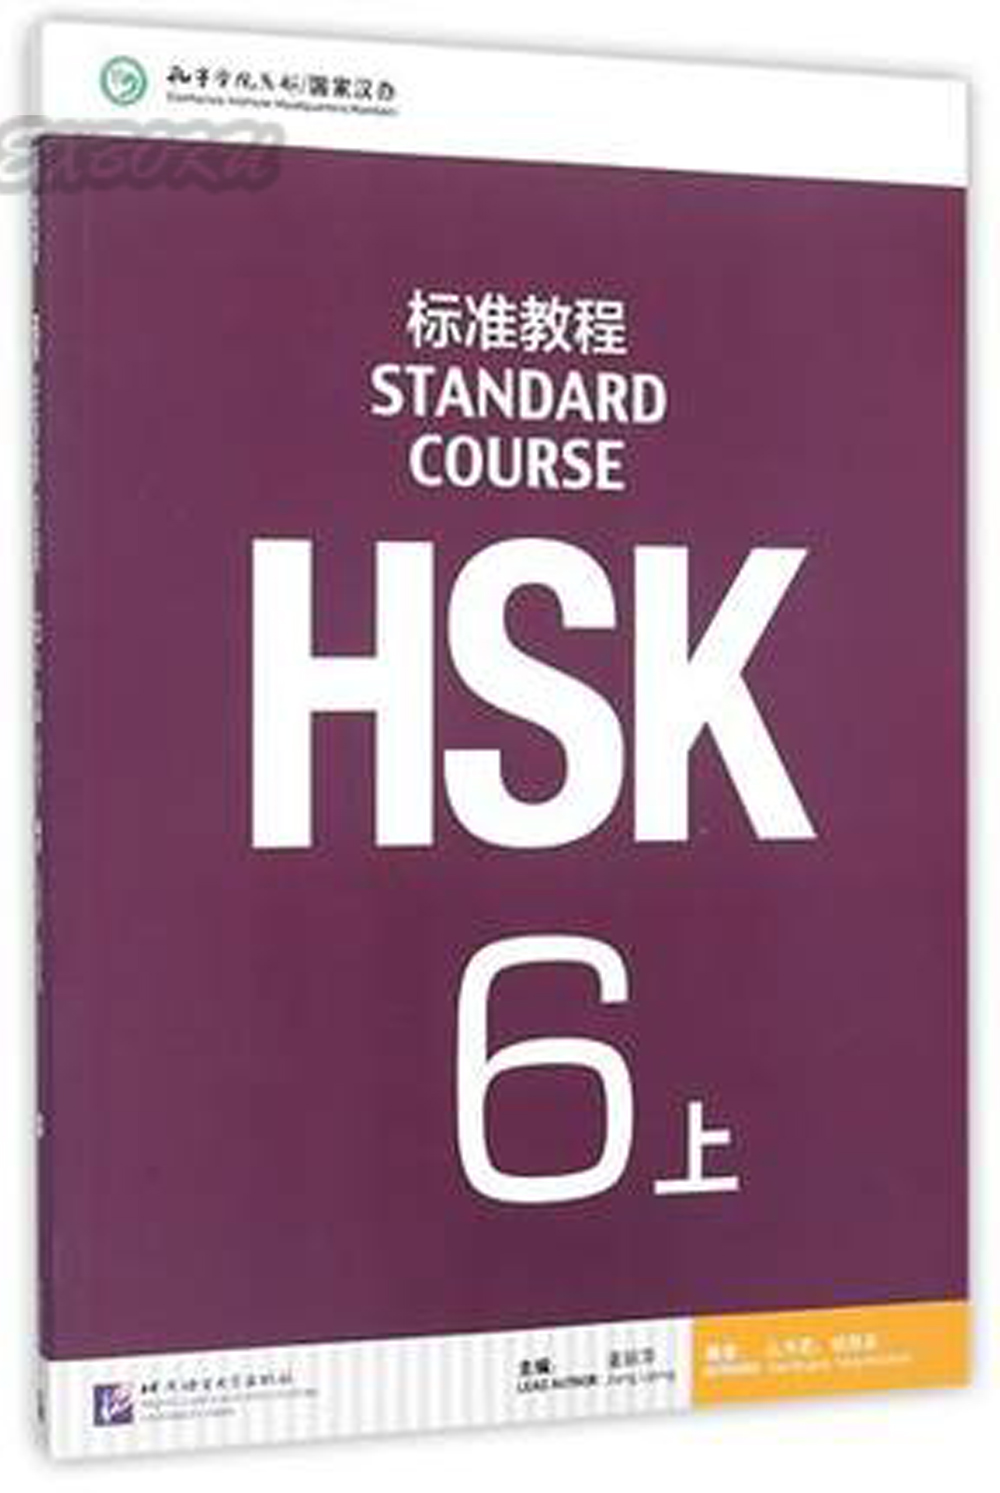 HSK Standard Course 6 - Chinese Mandarin HSK standard tutorial students Textbook (with mp 3 CD ) chinese standard course hsk 6 volume 1 with cd chinese mandarin hsk standard tutorial students textbook